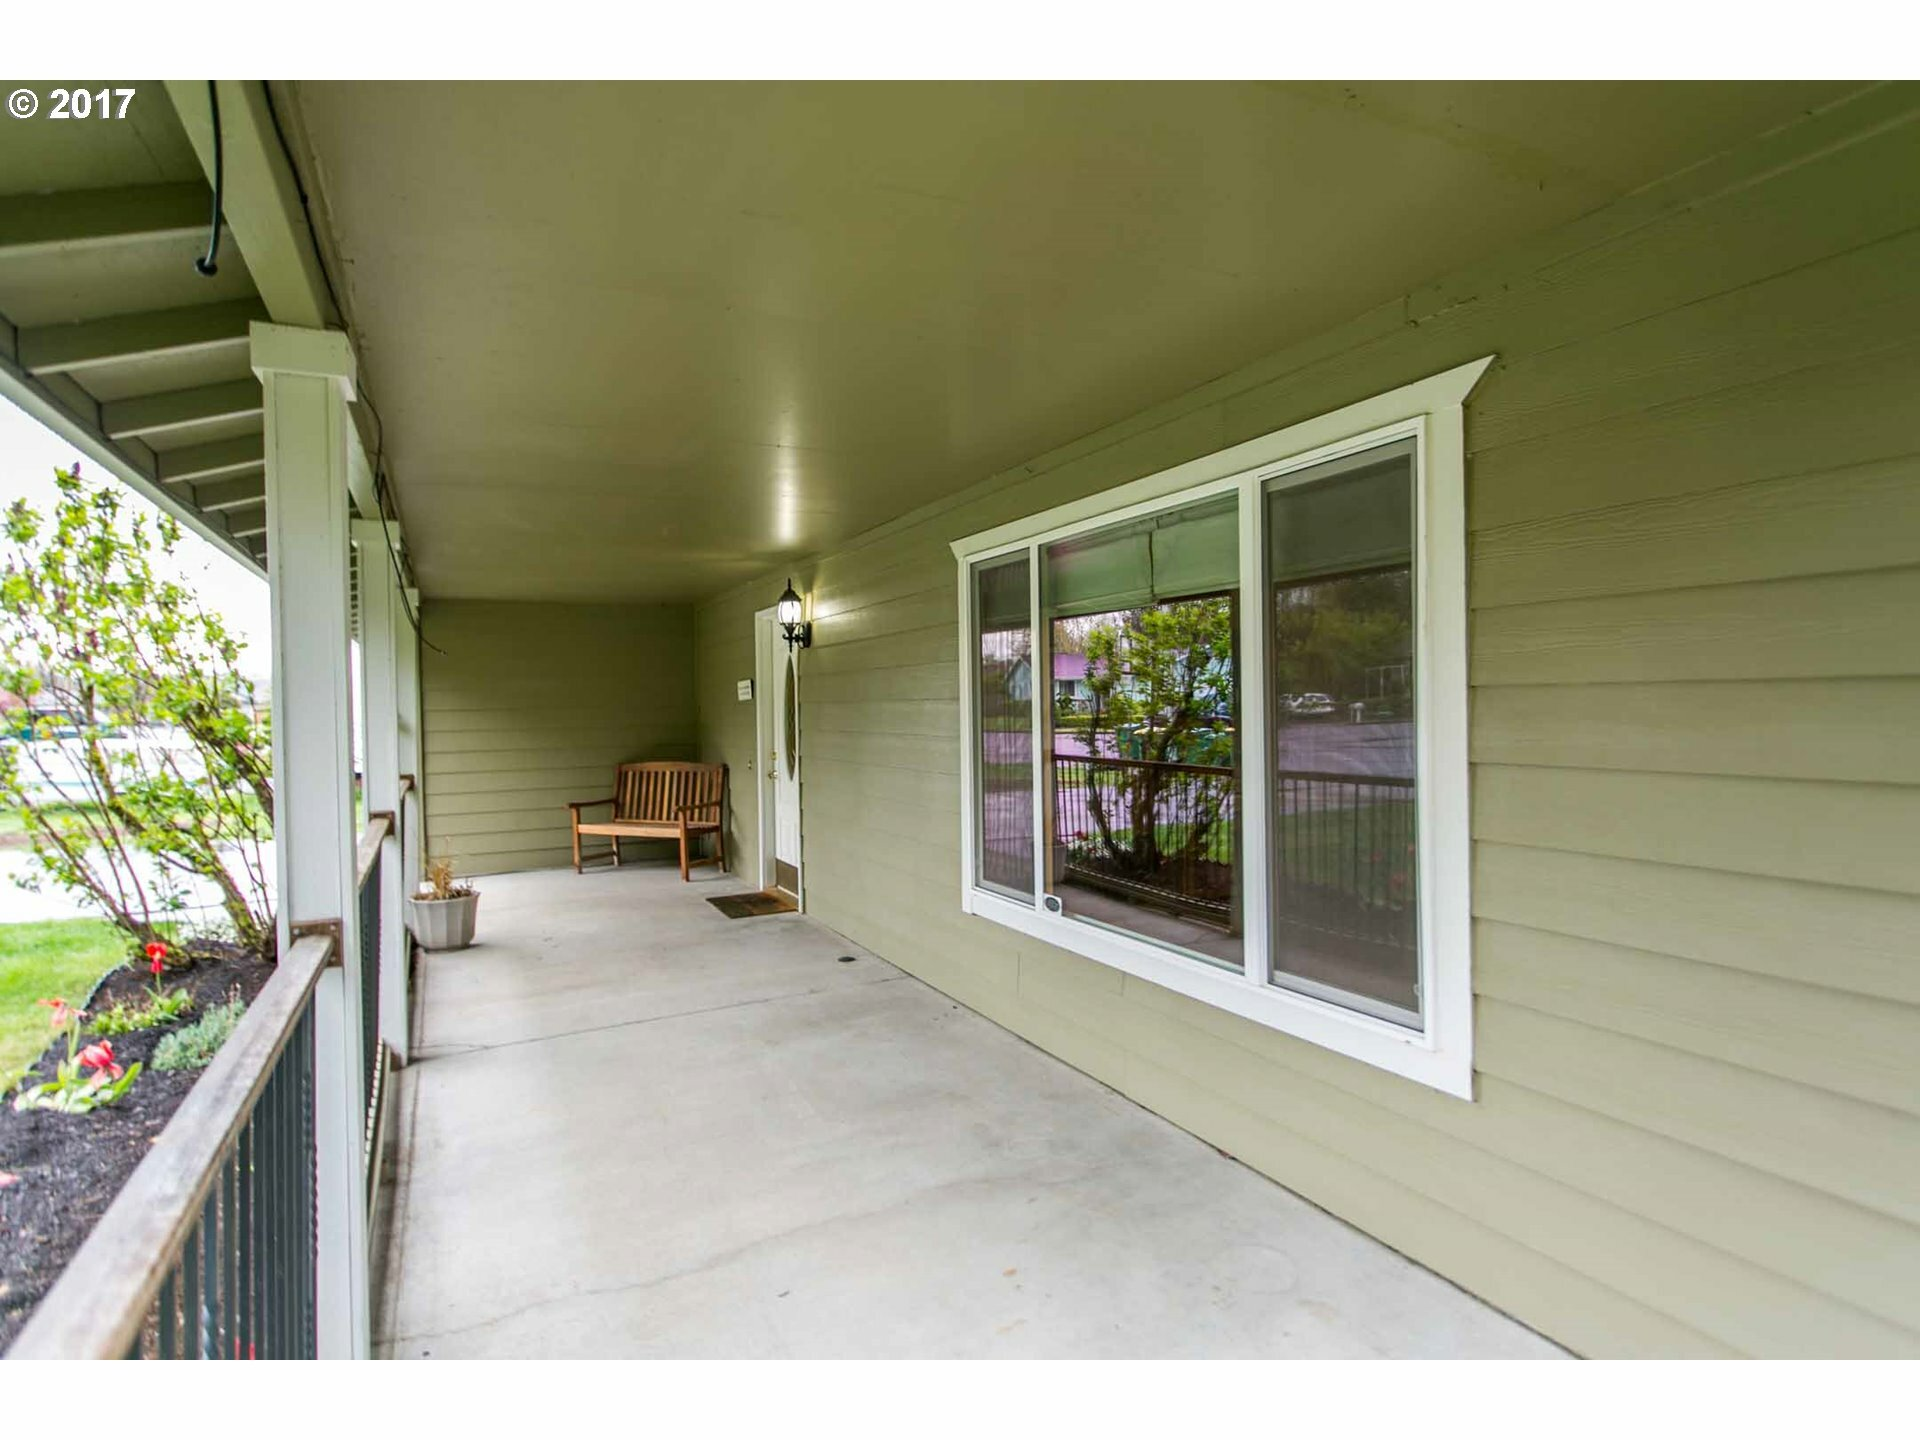 1841 Se Lewellyn Ave, Troutdale, OR - USA (photo 3)